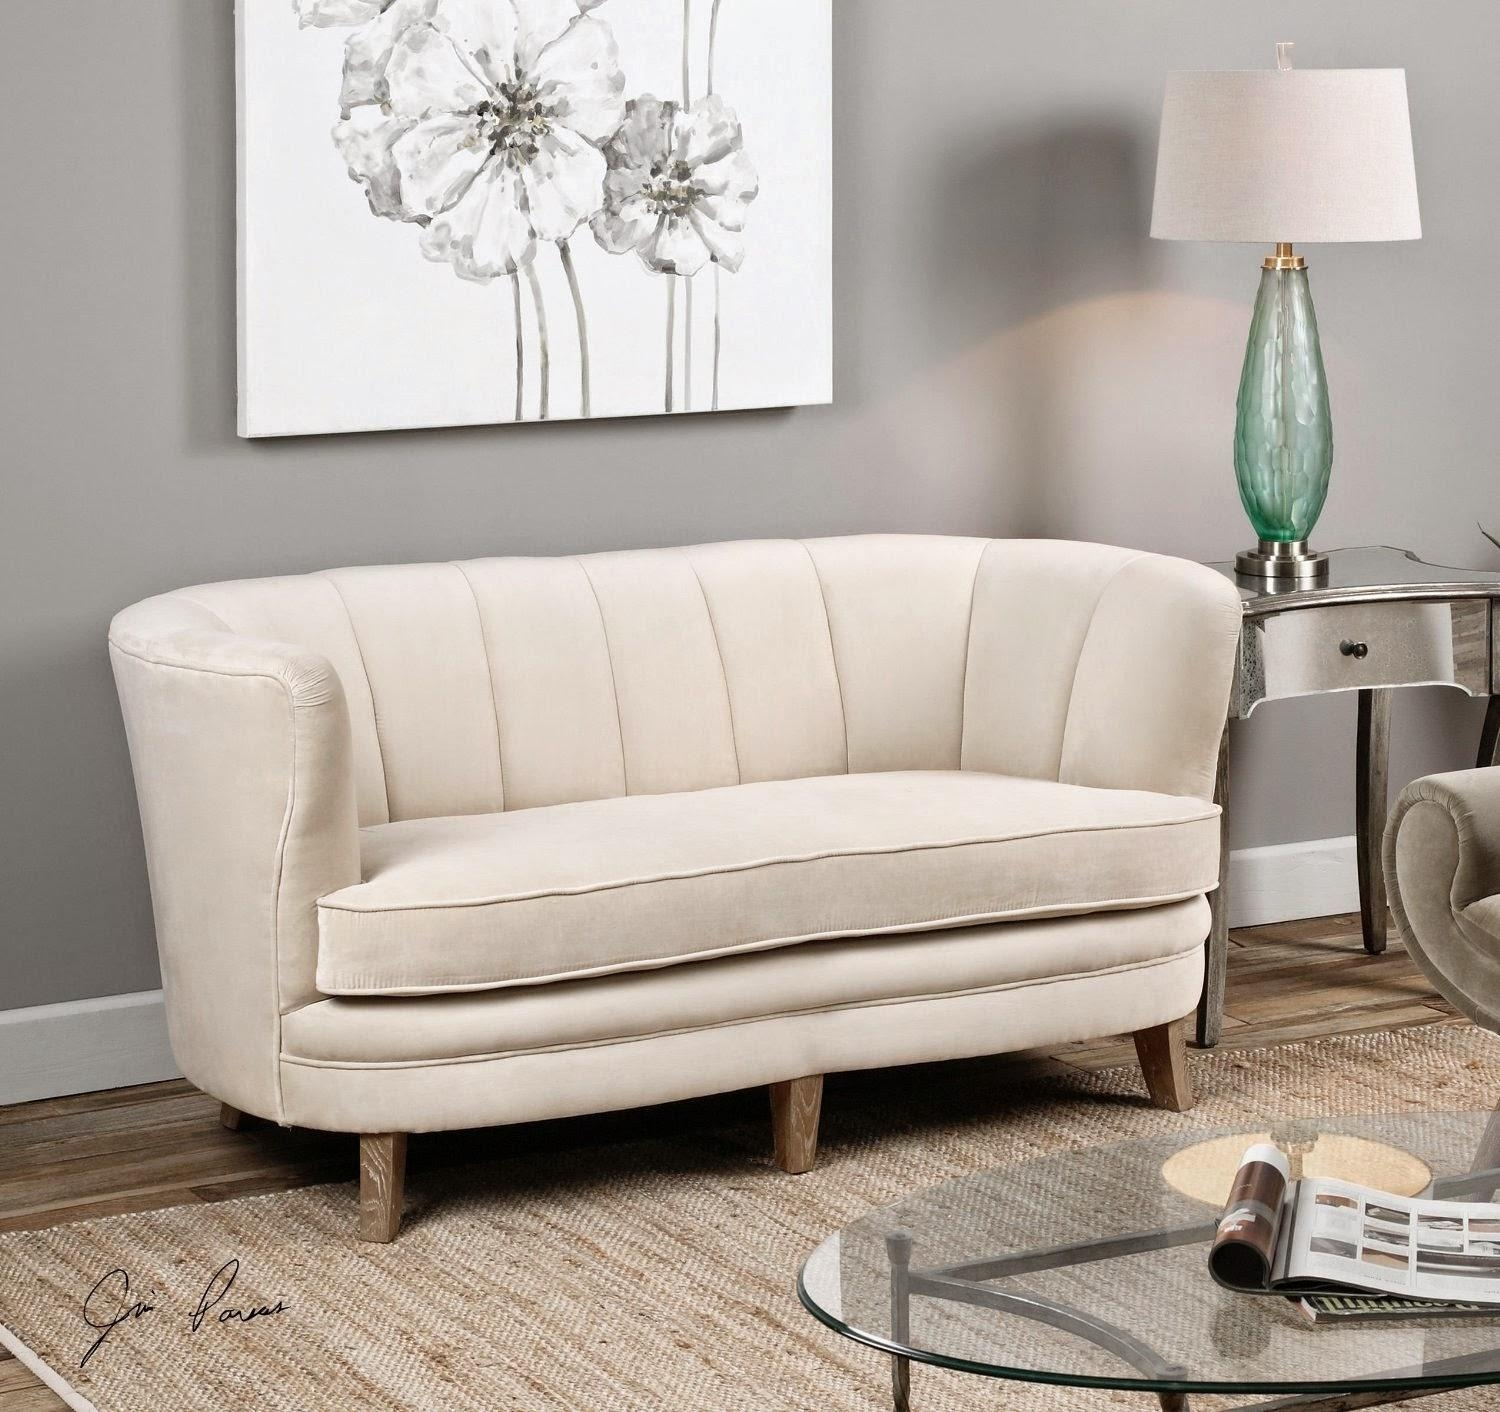 Sofas Center : Inexpensive Sectional Sofas For Small Spaces Best With Regard To Inexpensive Sectional Sofas For Small Spaces (Image 19 of 20)